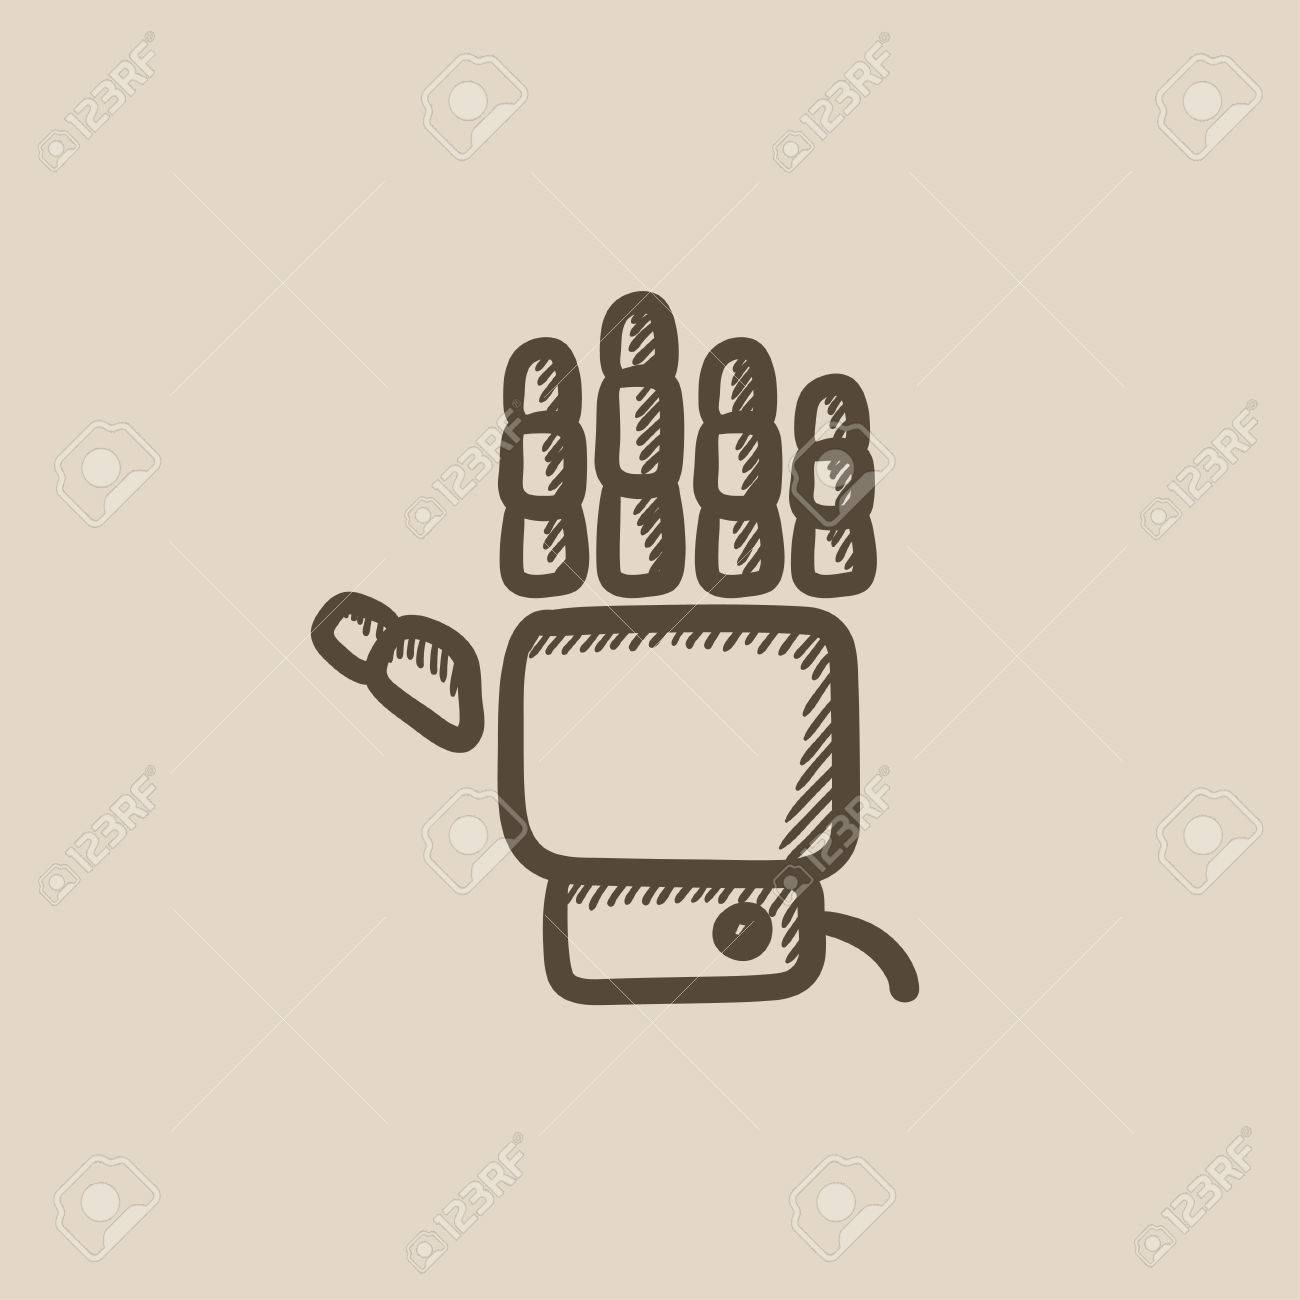 Robot hand vector sketch icon isolated on background  Hand drawn